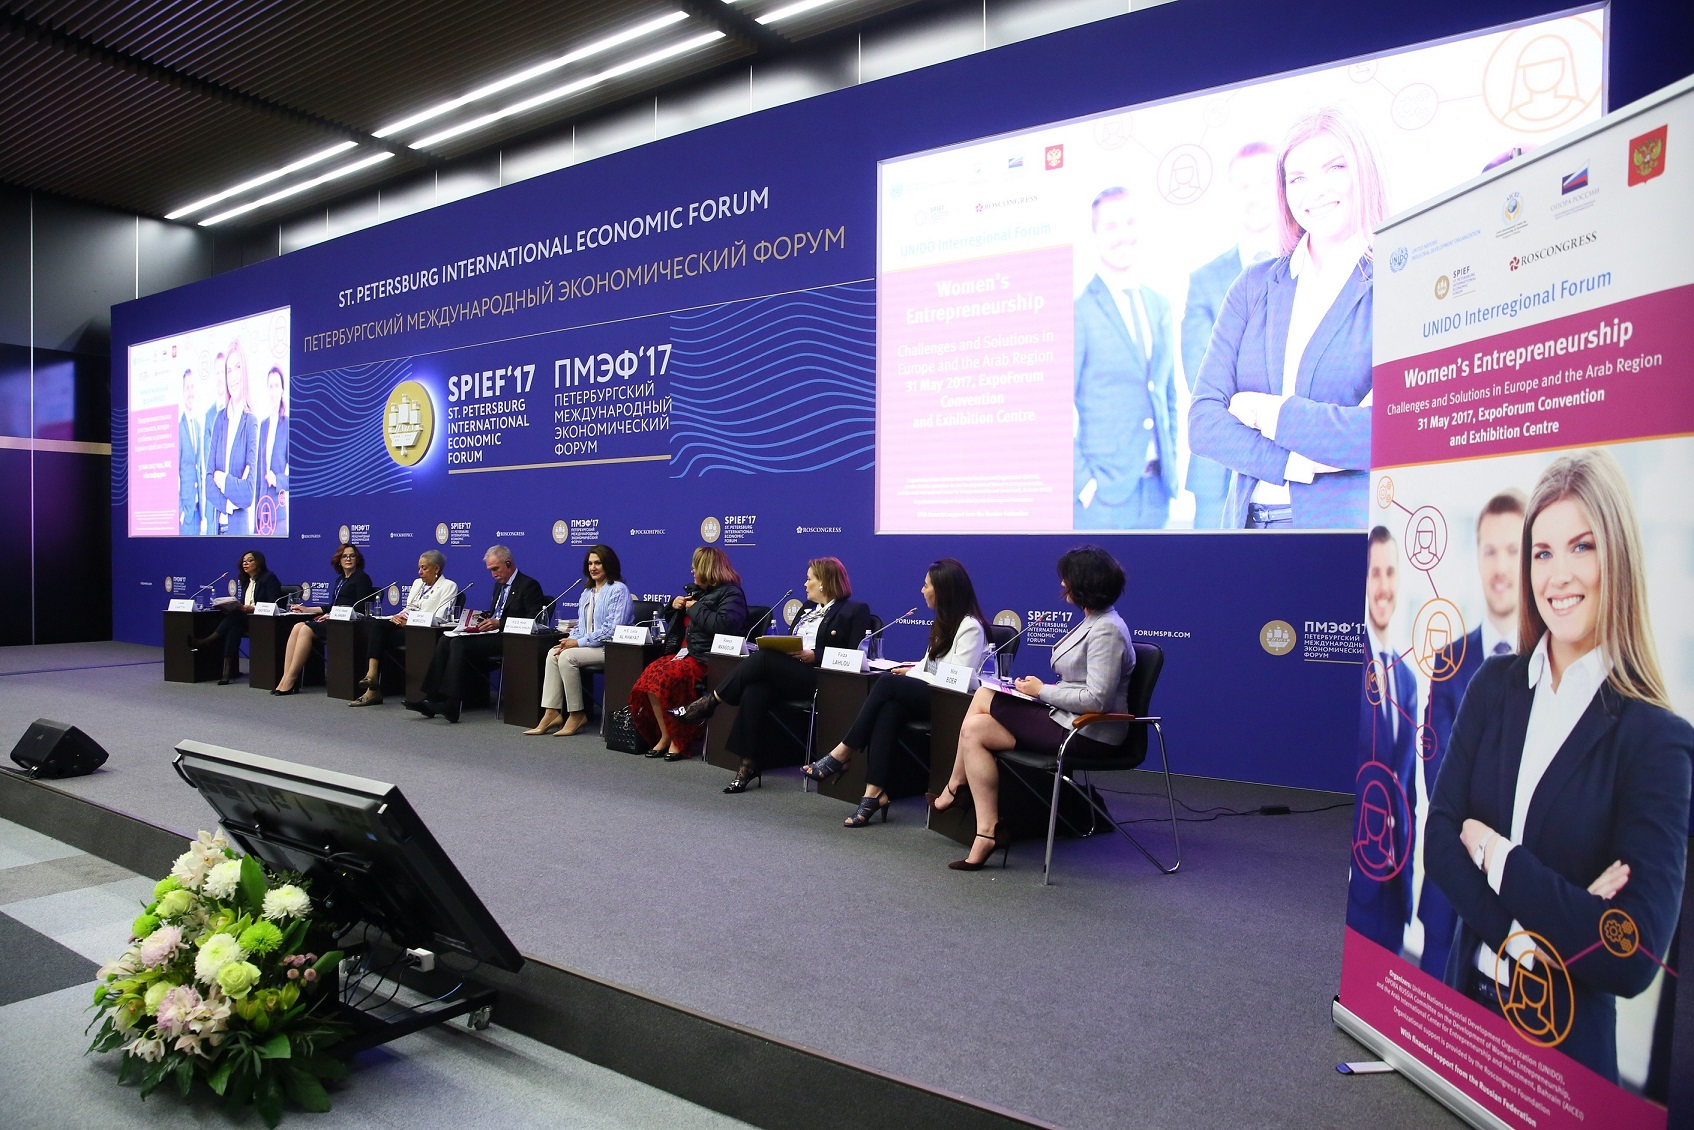 "International Forum ""Increasing the contribution of women to economic growth and prosperity: Creating an enabling environment"" under UNIDO to be held at SPIEF 2018"